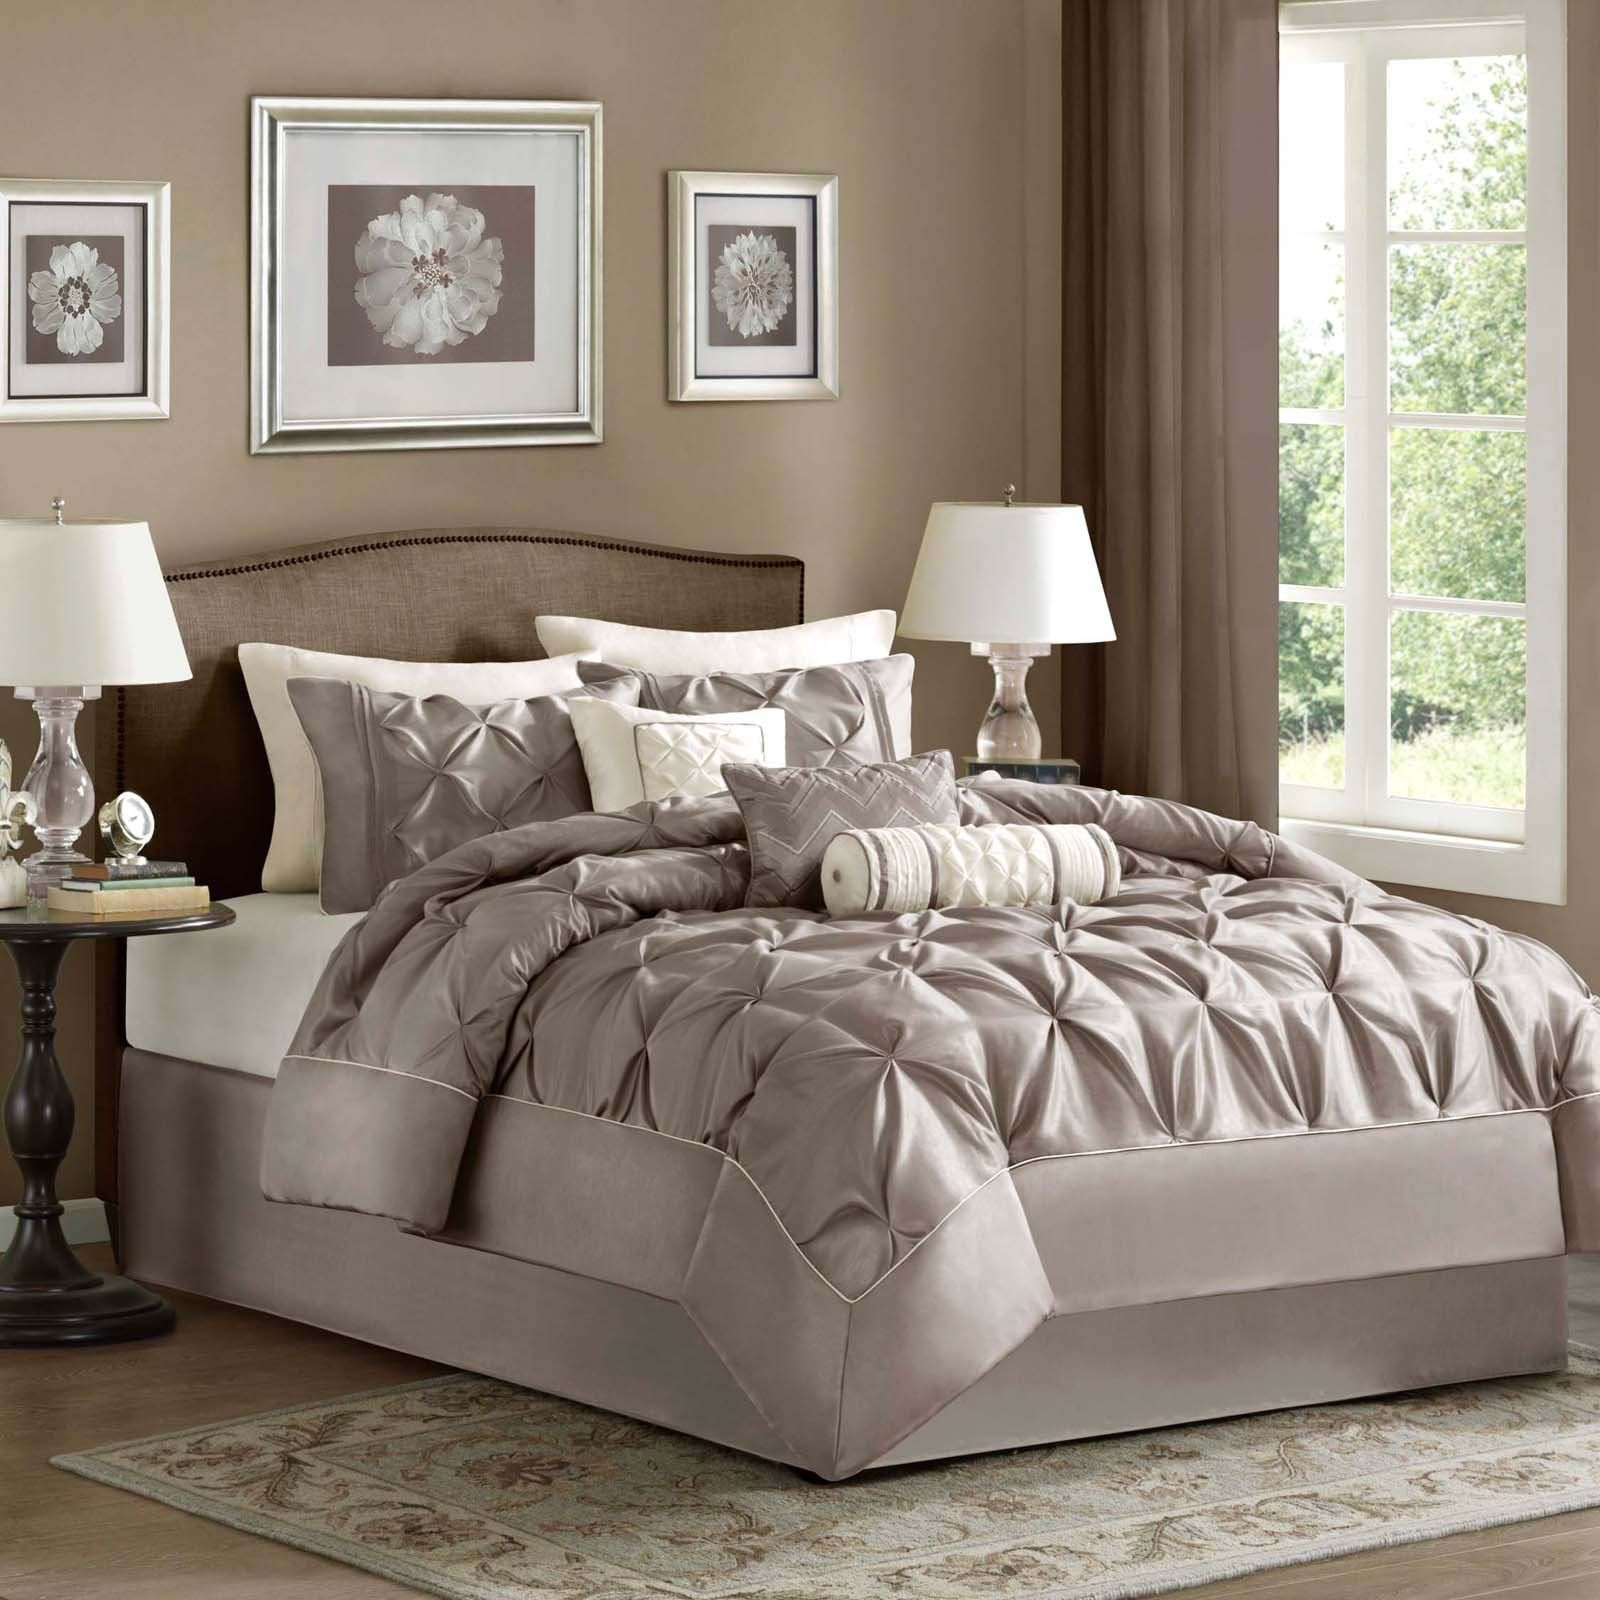 for olivia scene park navy less comforter plaid set bran and city from blue quilt covers duvet madison